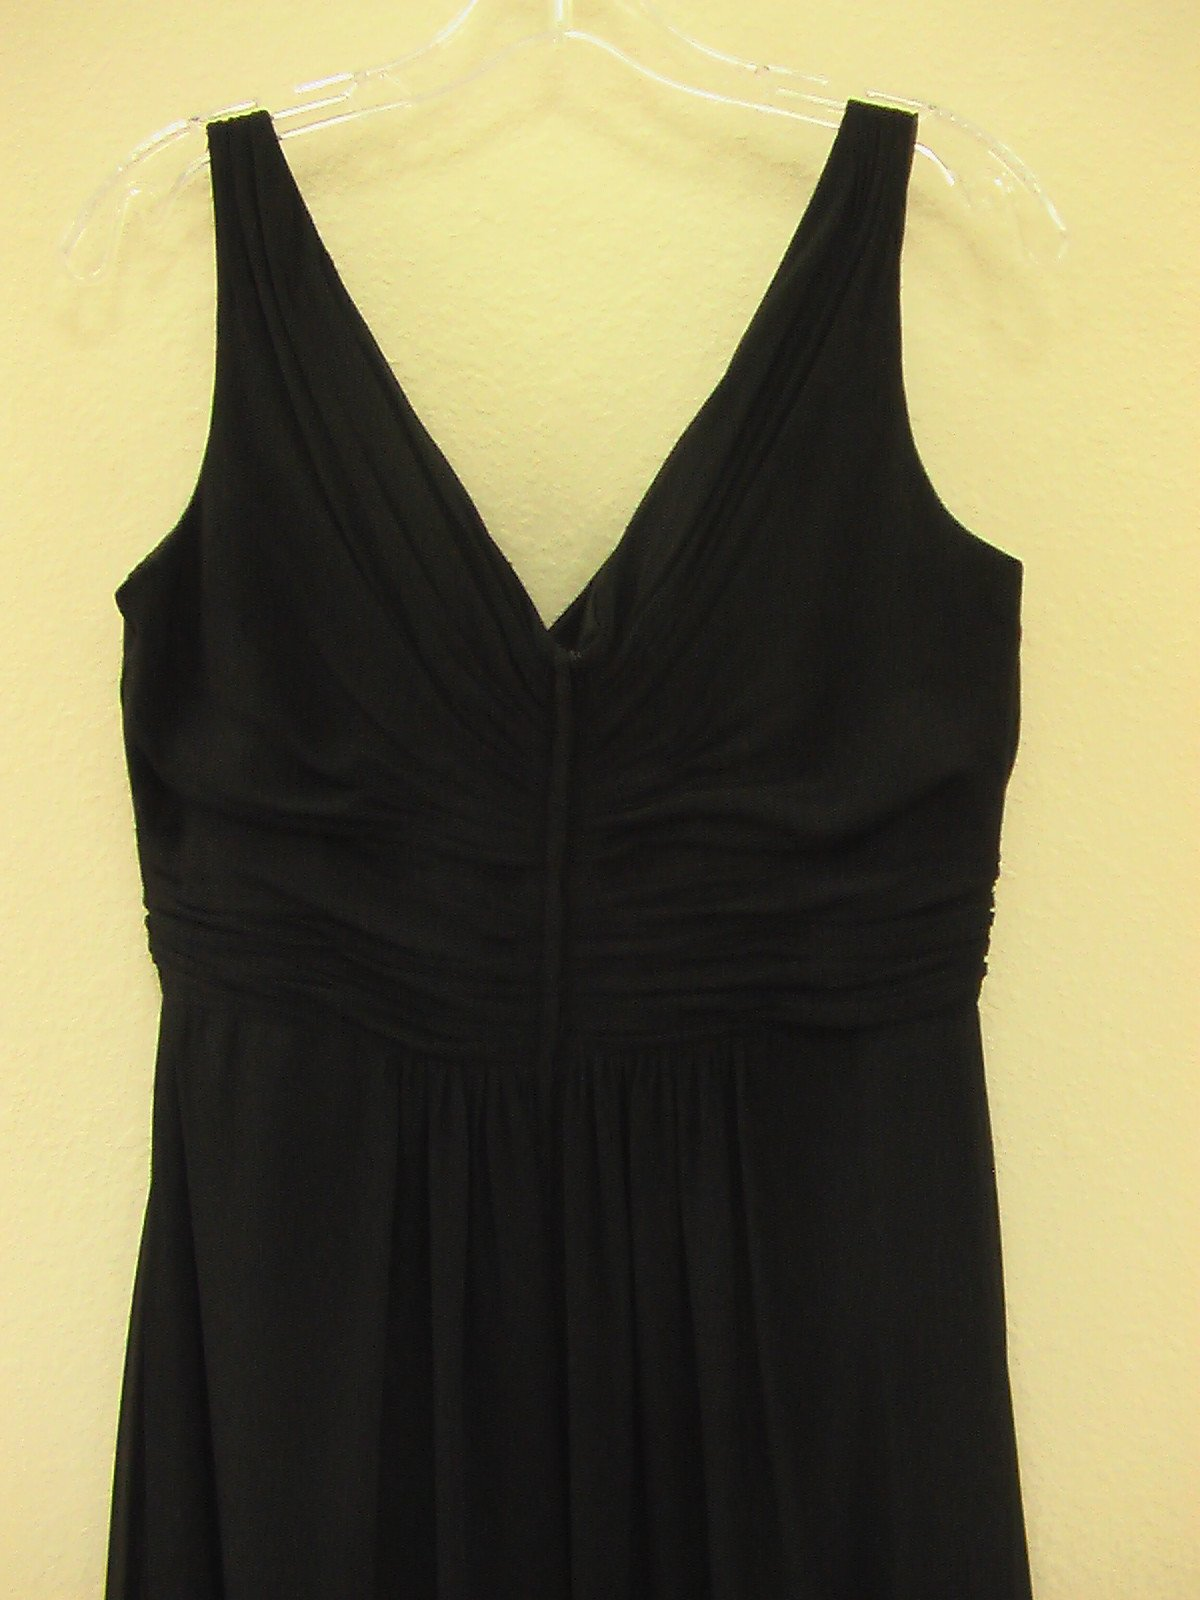 Pretty Maids BM40 Black size 12 In Stock Bridesmaid Dress - Tom's Bridal